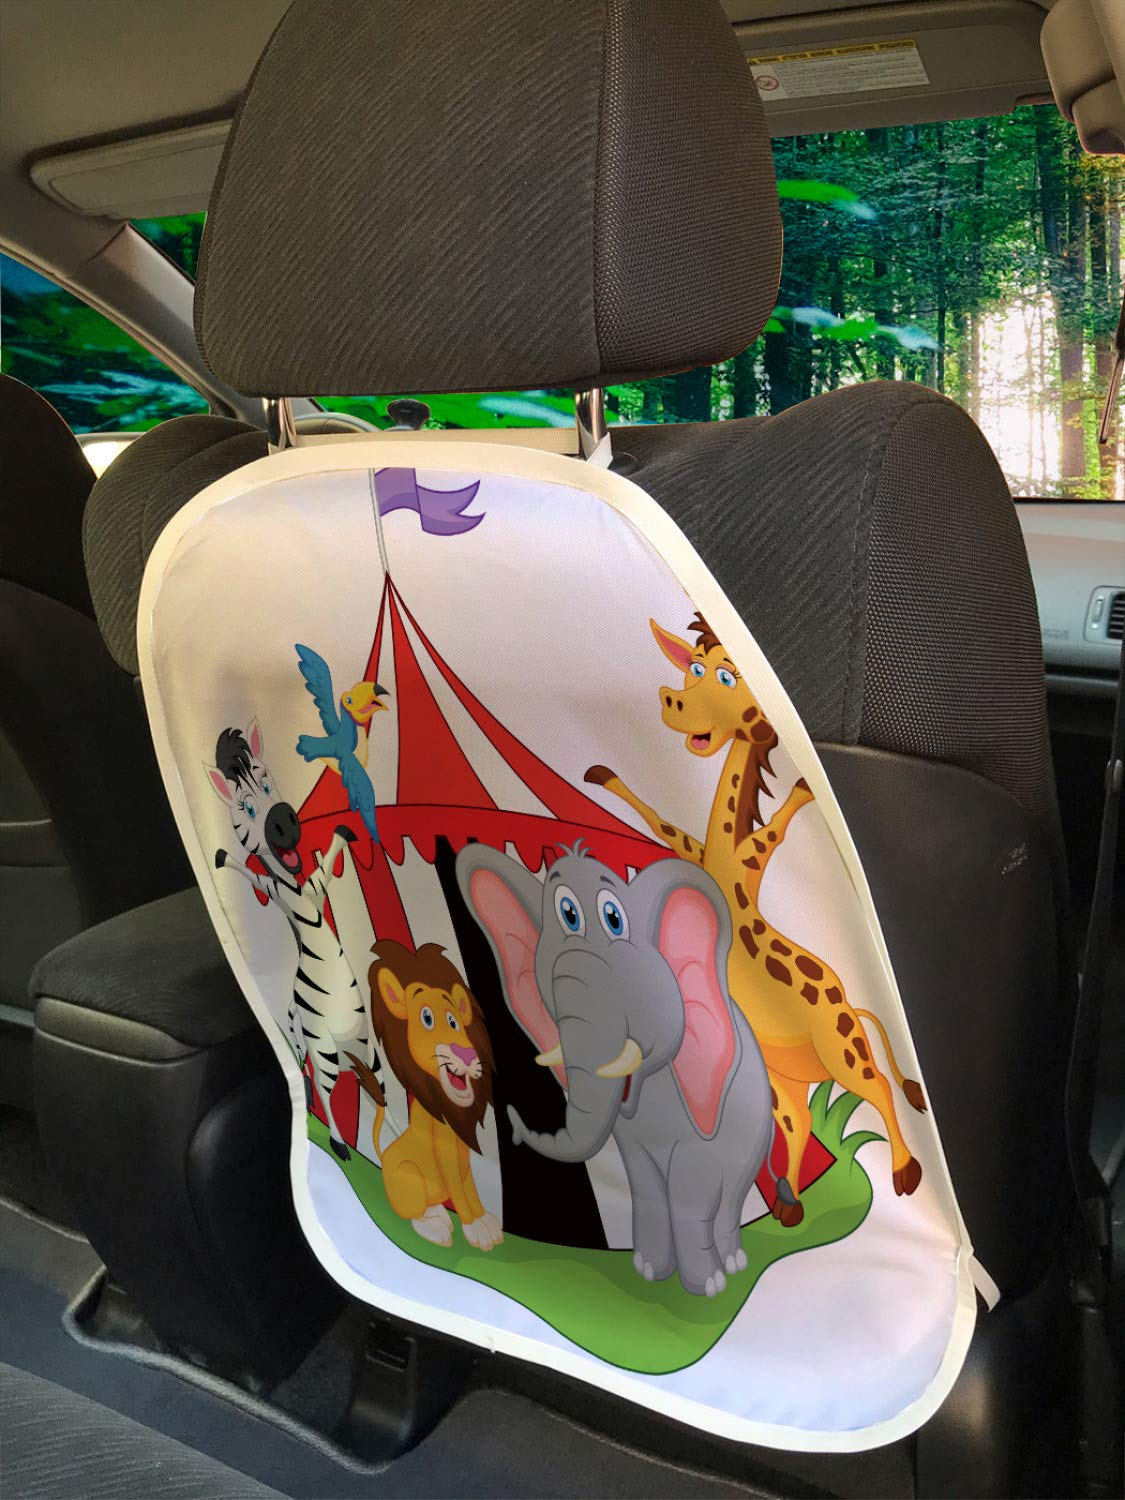 Ambesonne Circus Car Seat Protector Set of 2, Performer Acrobat Animals in Circus Tent Happy Giraffe Elephant Joyful Art, Universal Kick Mat for Dirt Mud & Scratches, 18